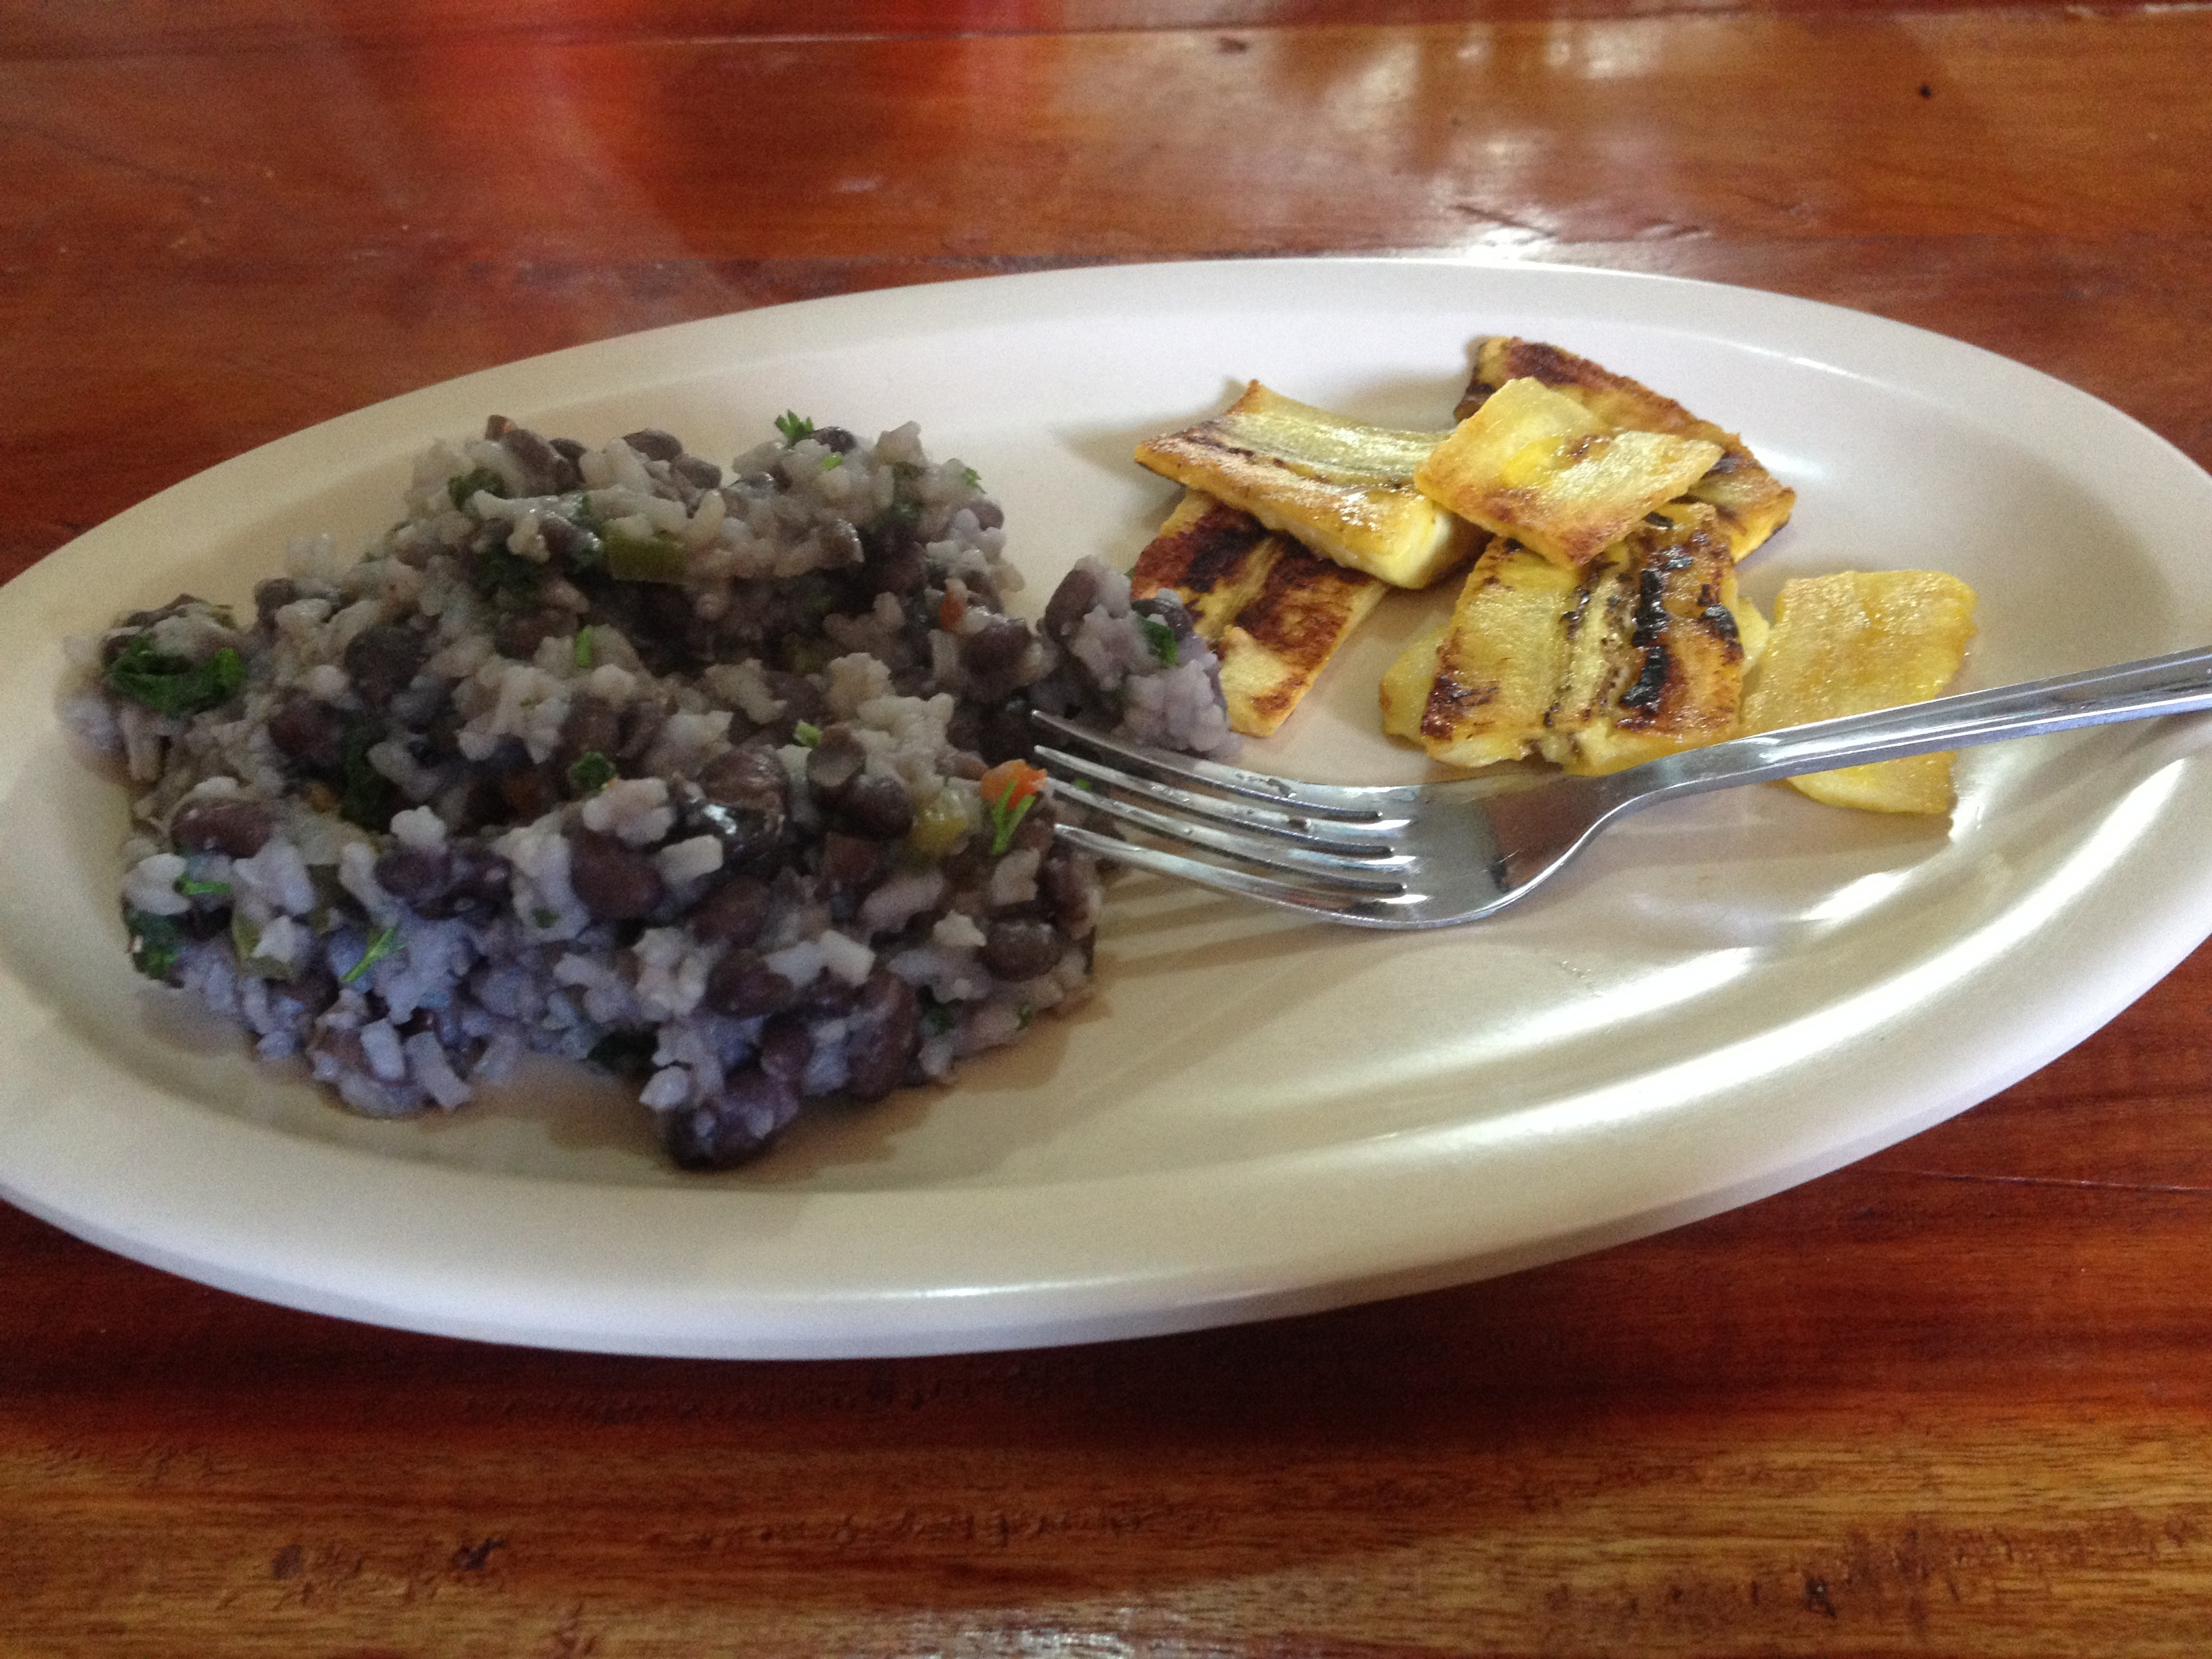 Our first Costa Rican Dish Made by Laura, black beans, onions, rice, cilantro,  and fried plantains